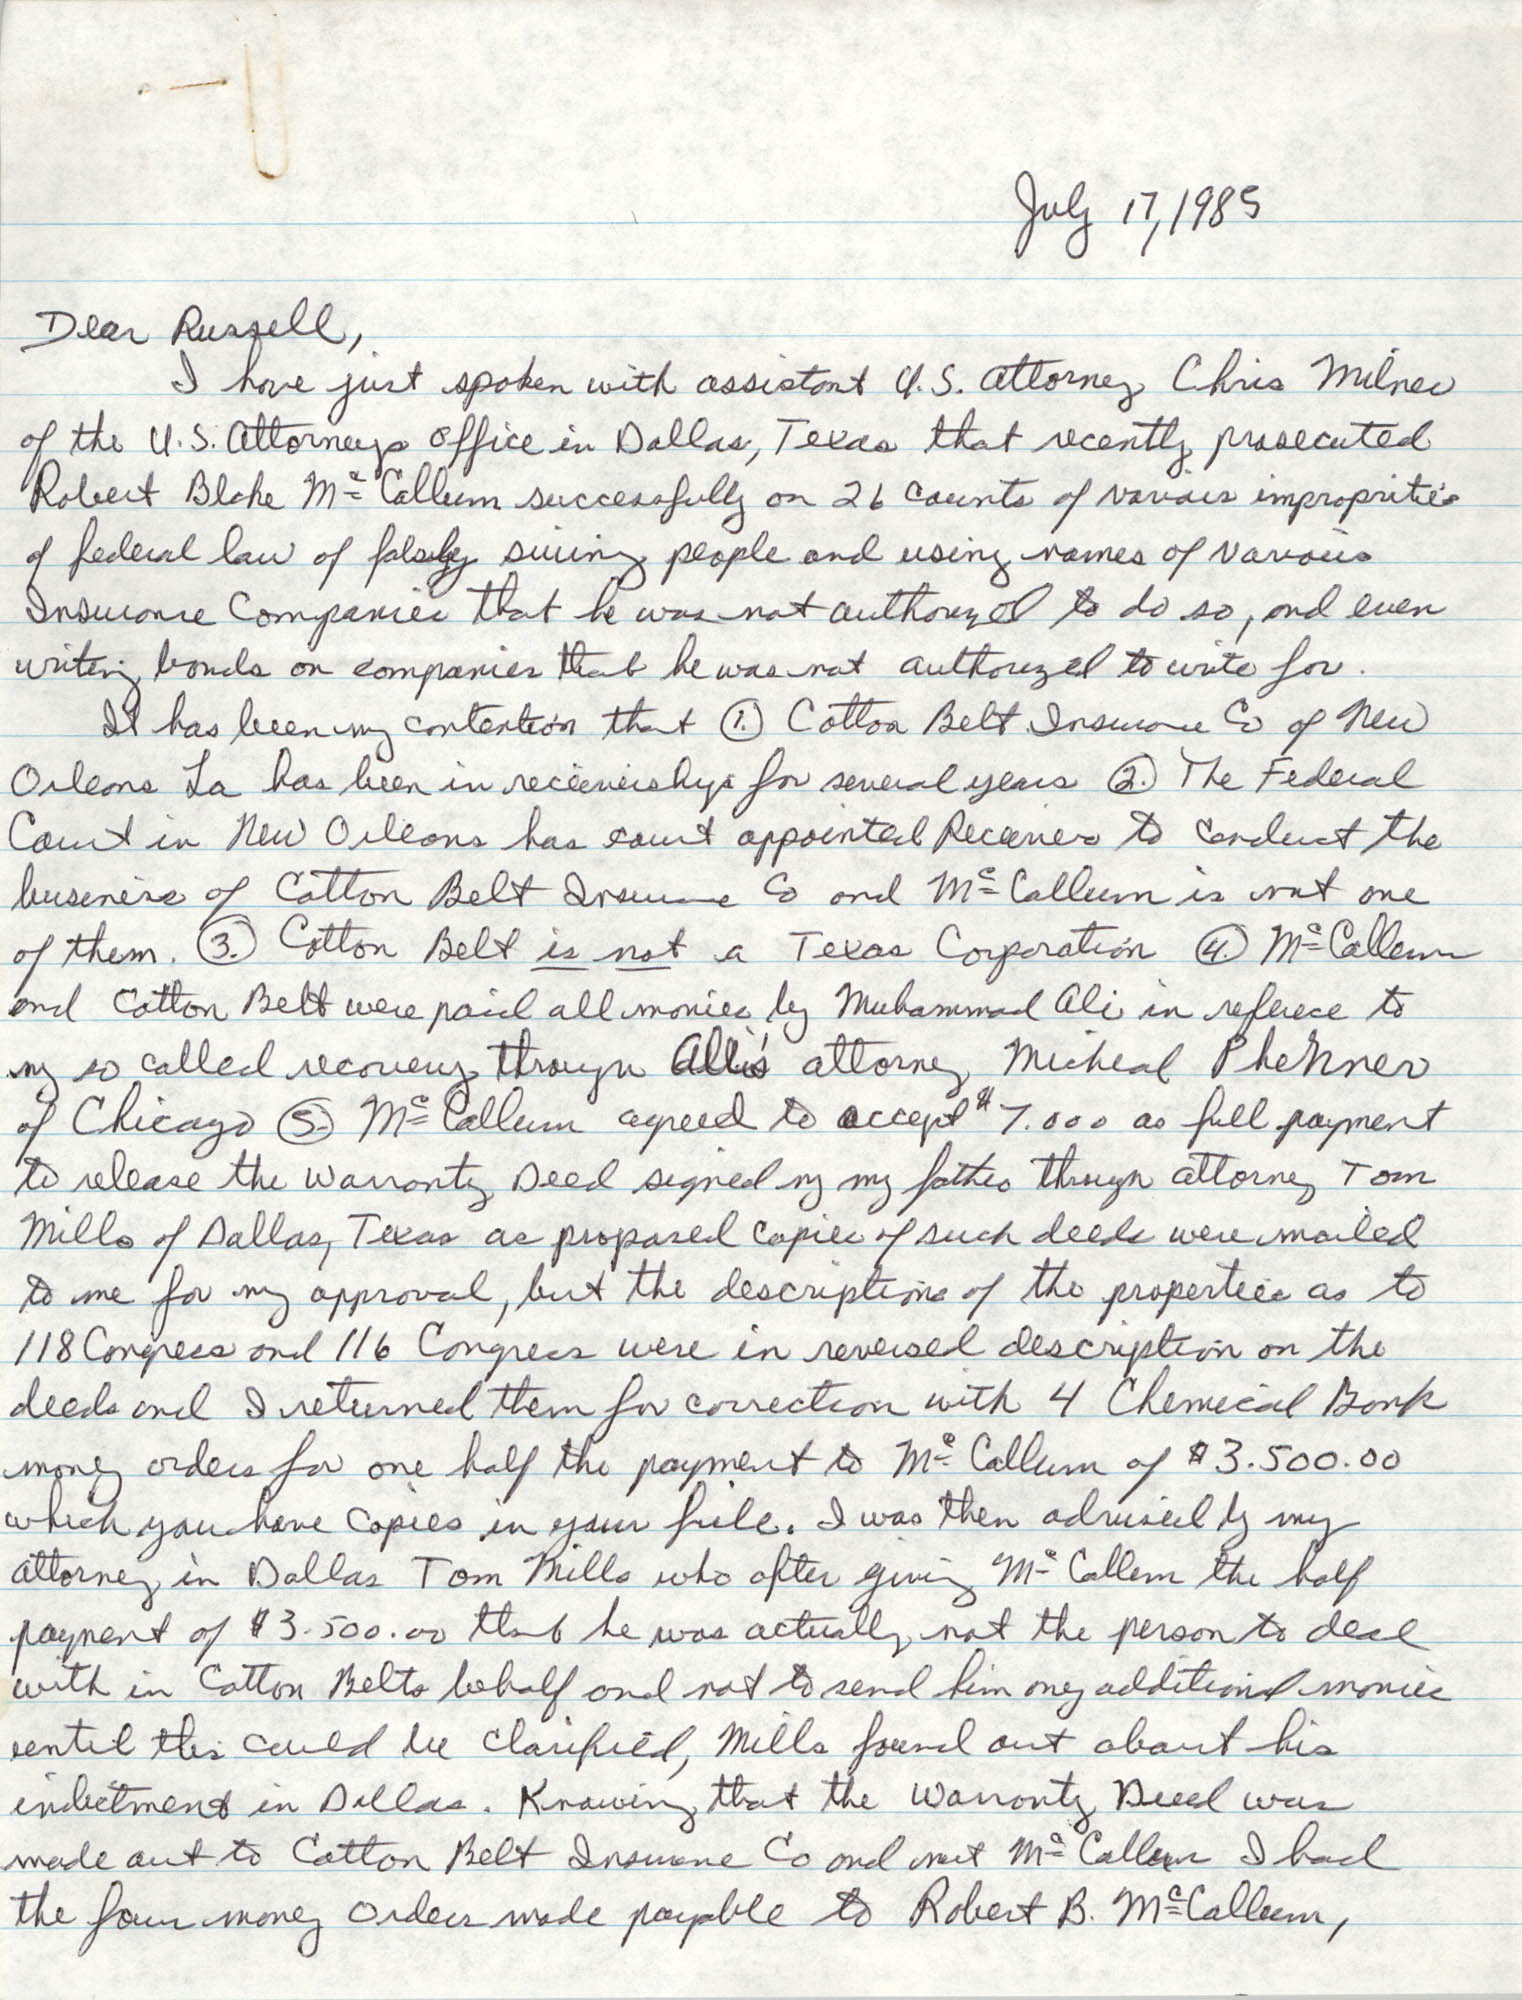 Handwritten letter from Reginald C. Barrett Jr. to Russell Brown, July 17, 1985